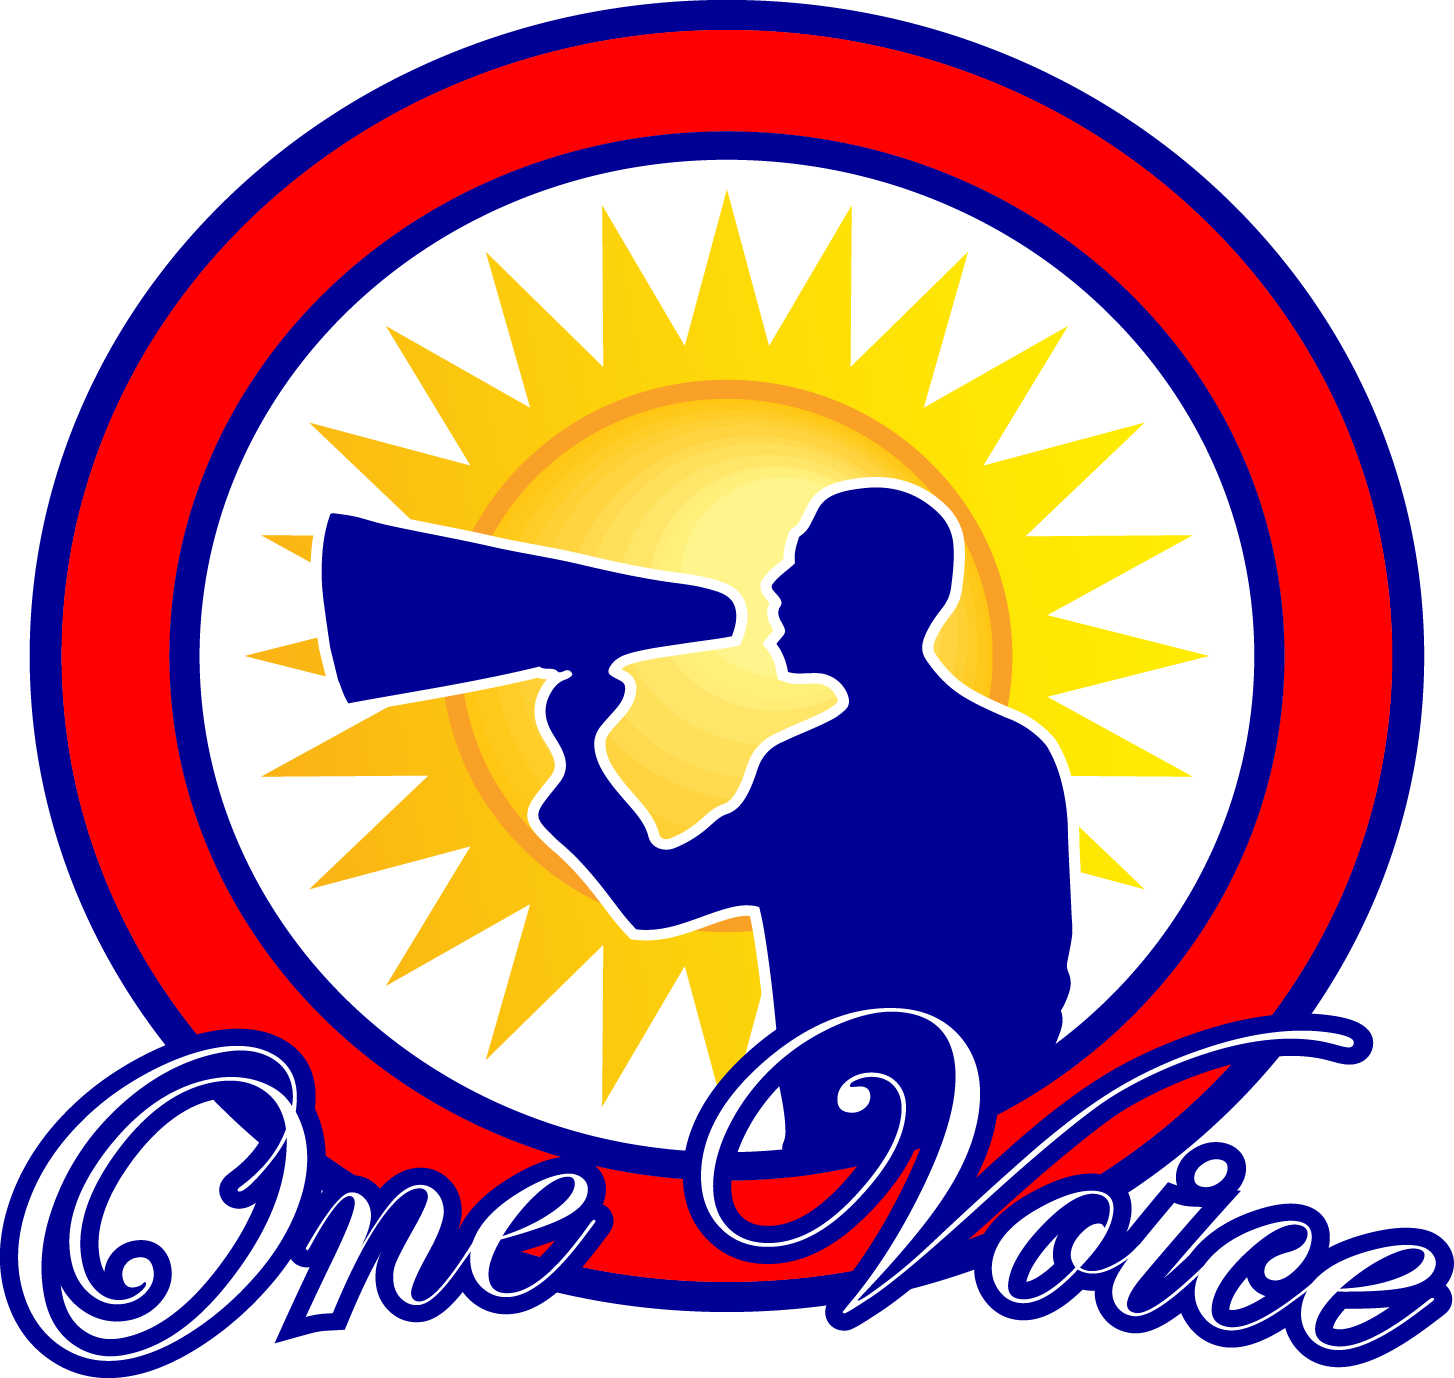 The One voice coalition